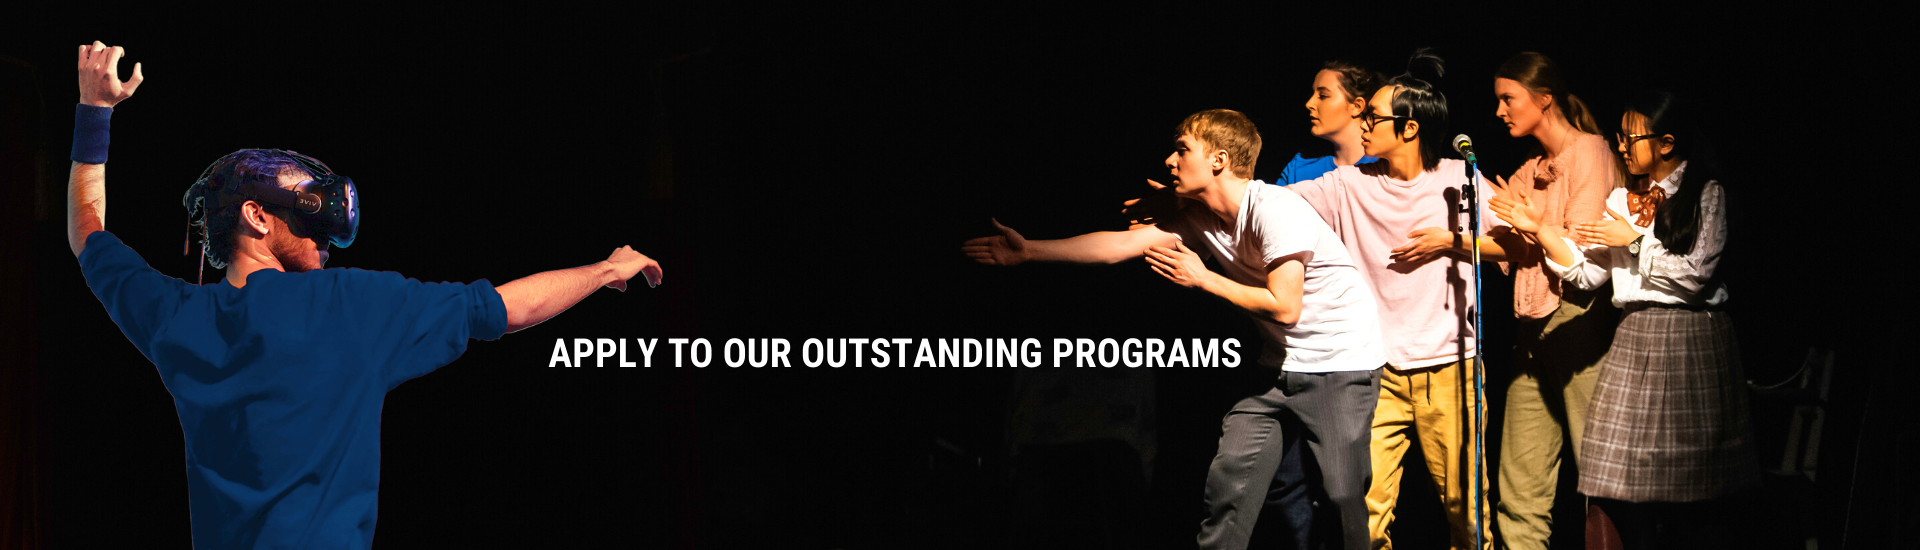 Apply to our outstanding programs